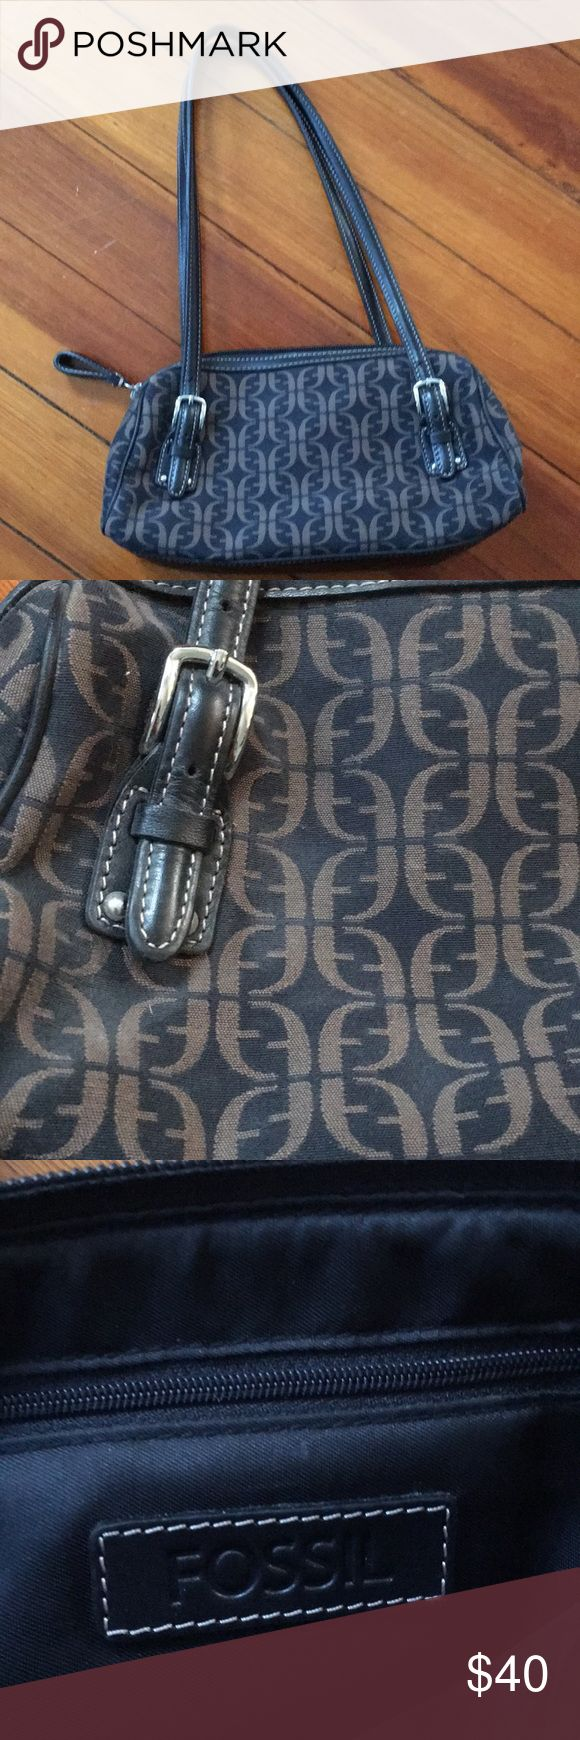 """Fossil Bag Brown and black bag with adjustable straps. Great condition, only used a couple of times. No tips or tears and inside lining looks unused. 10"""" across, 6"""" tall, and 3-4"""" wide. Fossil Bags"""